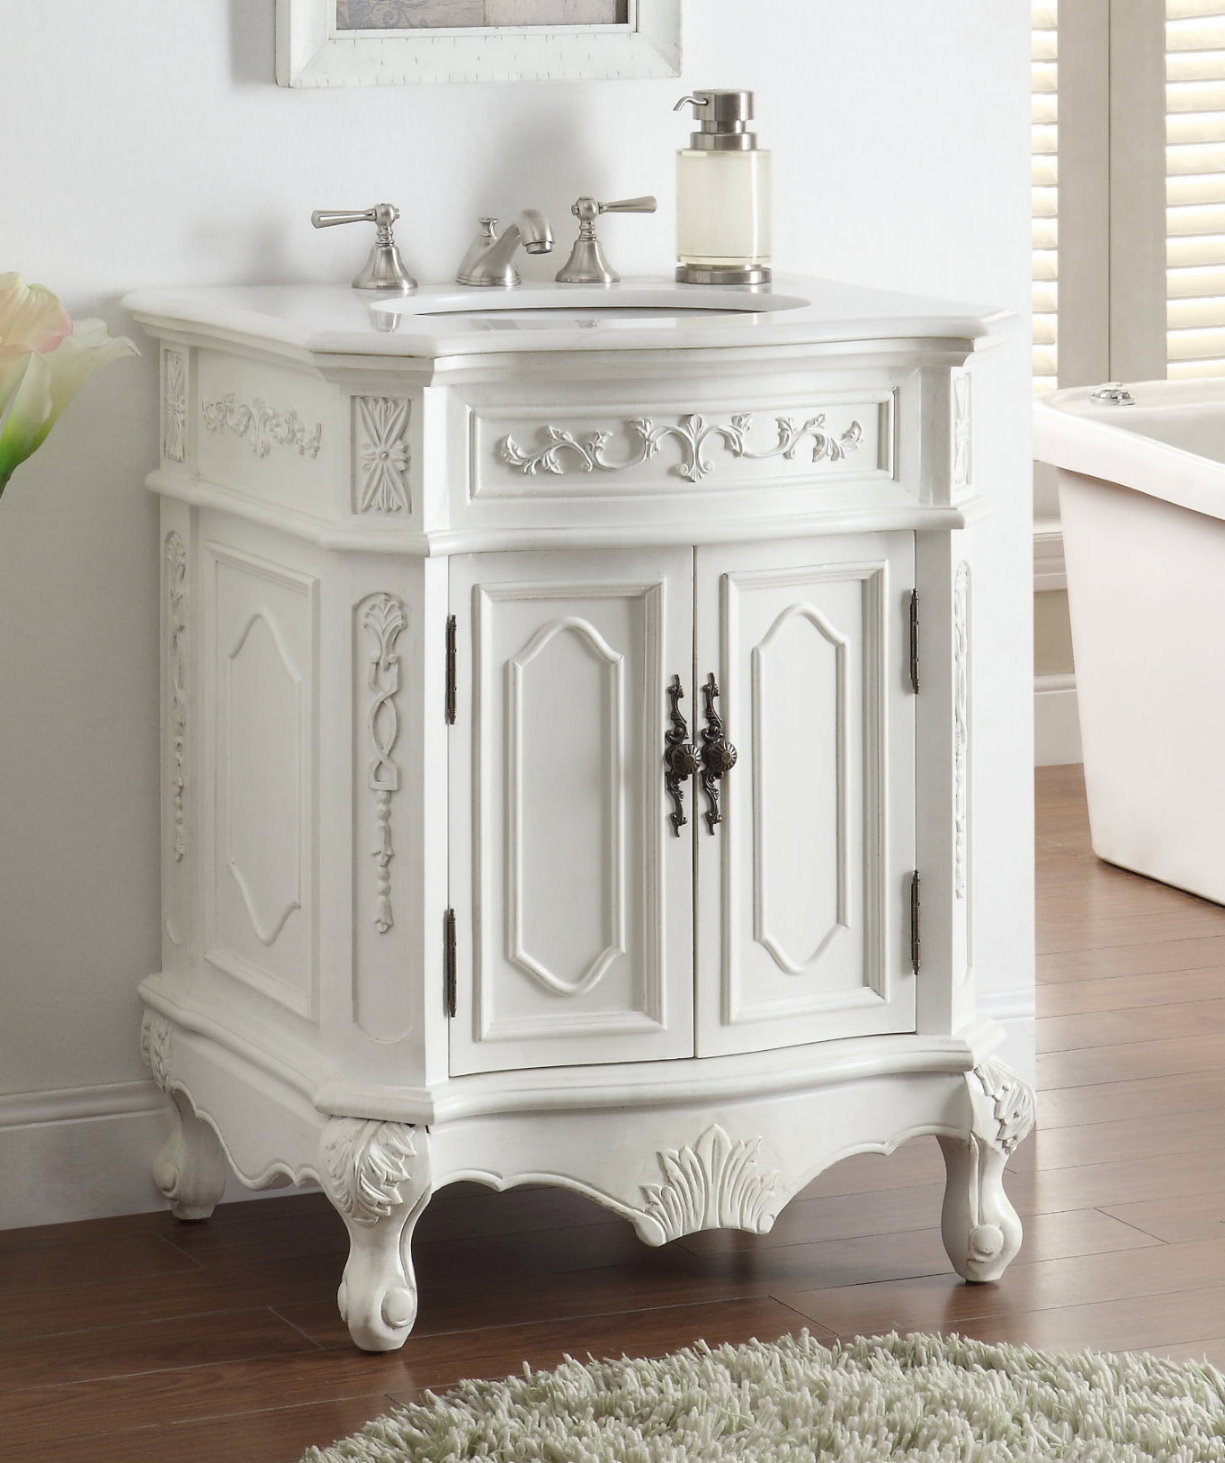 Adelina 27 Inch White Finish Antique Bathroom Vanity